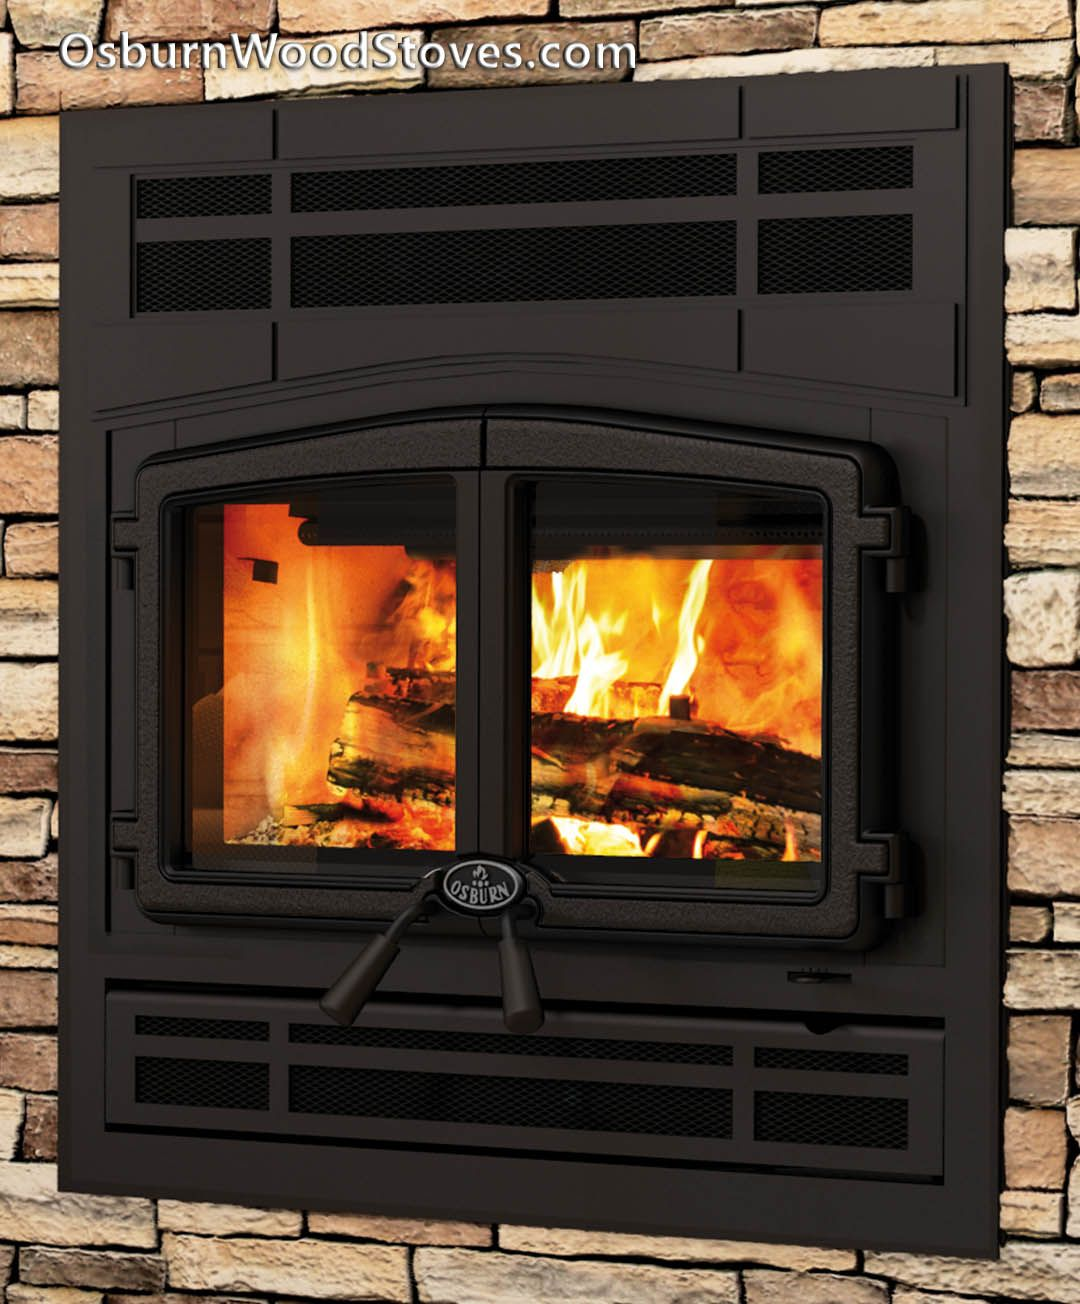 Osburn Stratford Purchase Your Osburn Stratford From Osburnwoodstoves Com Wood Fireplace Wood Stove Stove Fireplace